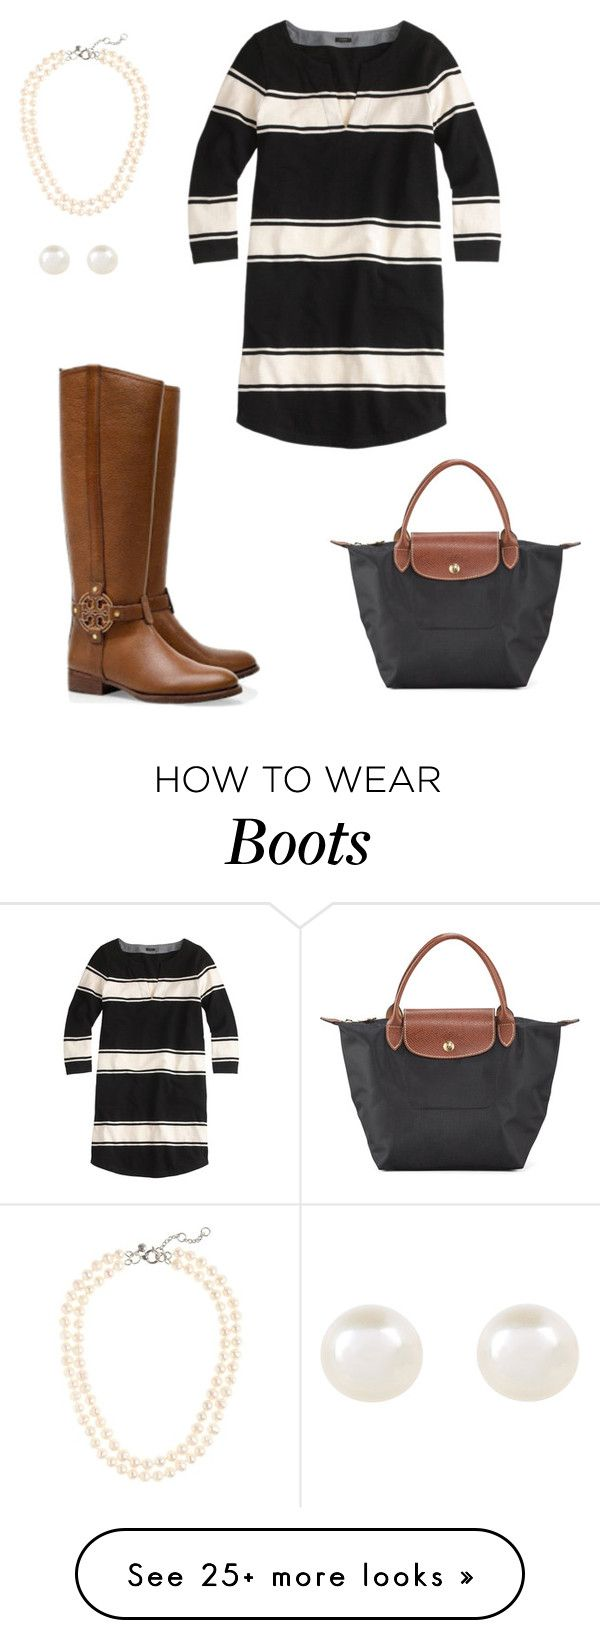 """""""Fall dress and boots"""" by dancetx on Polyvore featuring Longchamp, J.Crew, Tory Burch and Accessorize"""